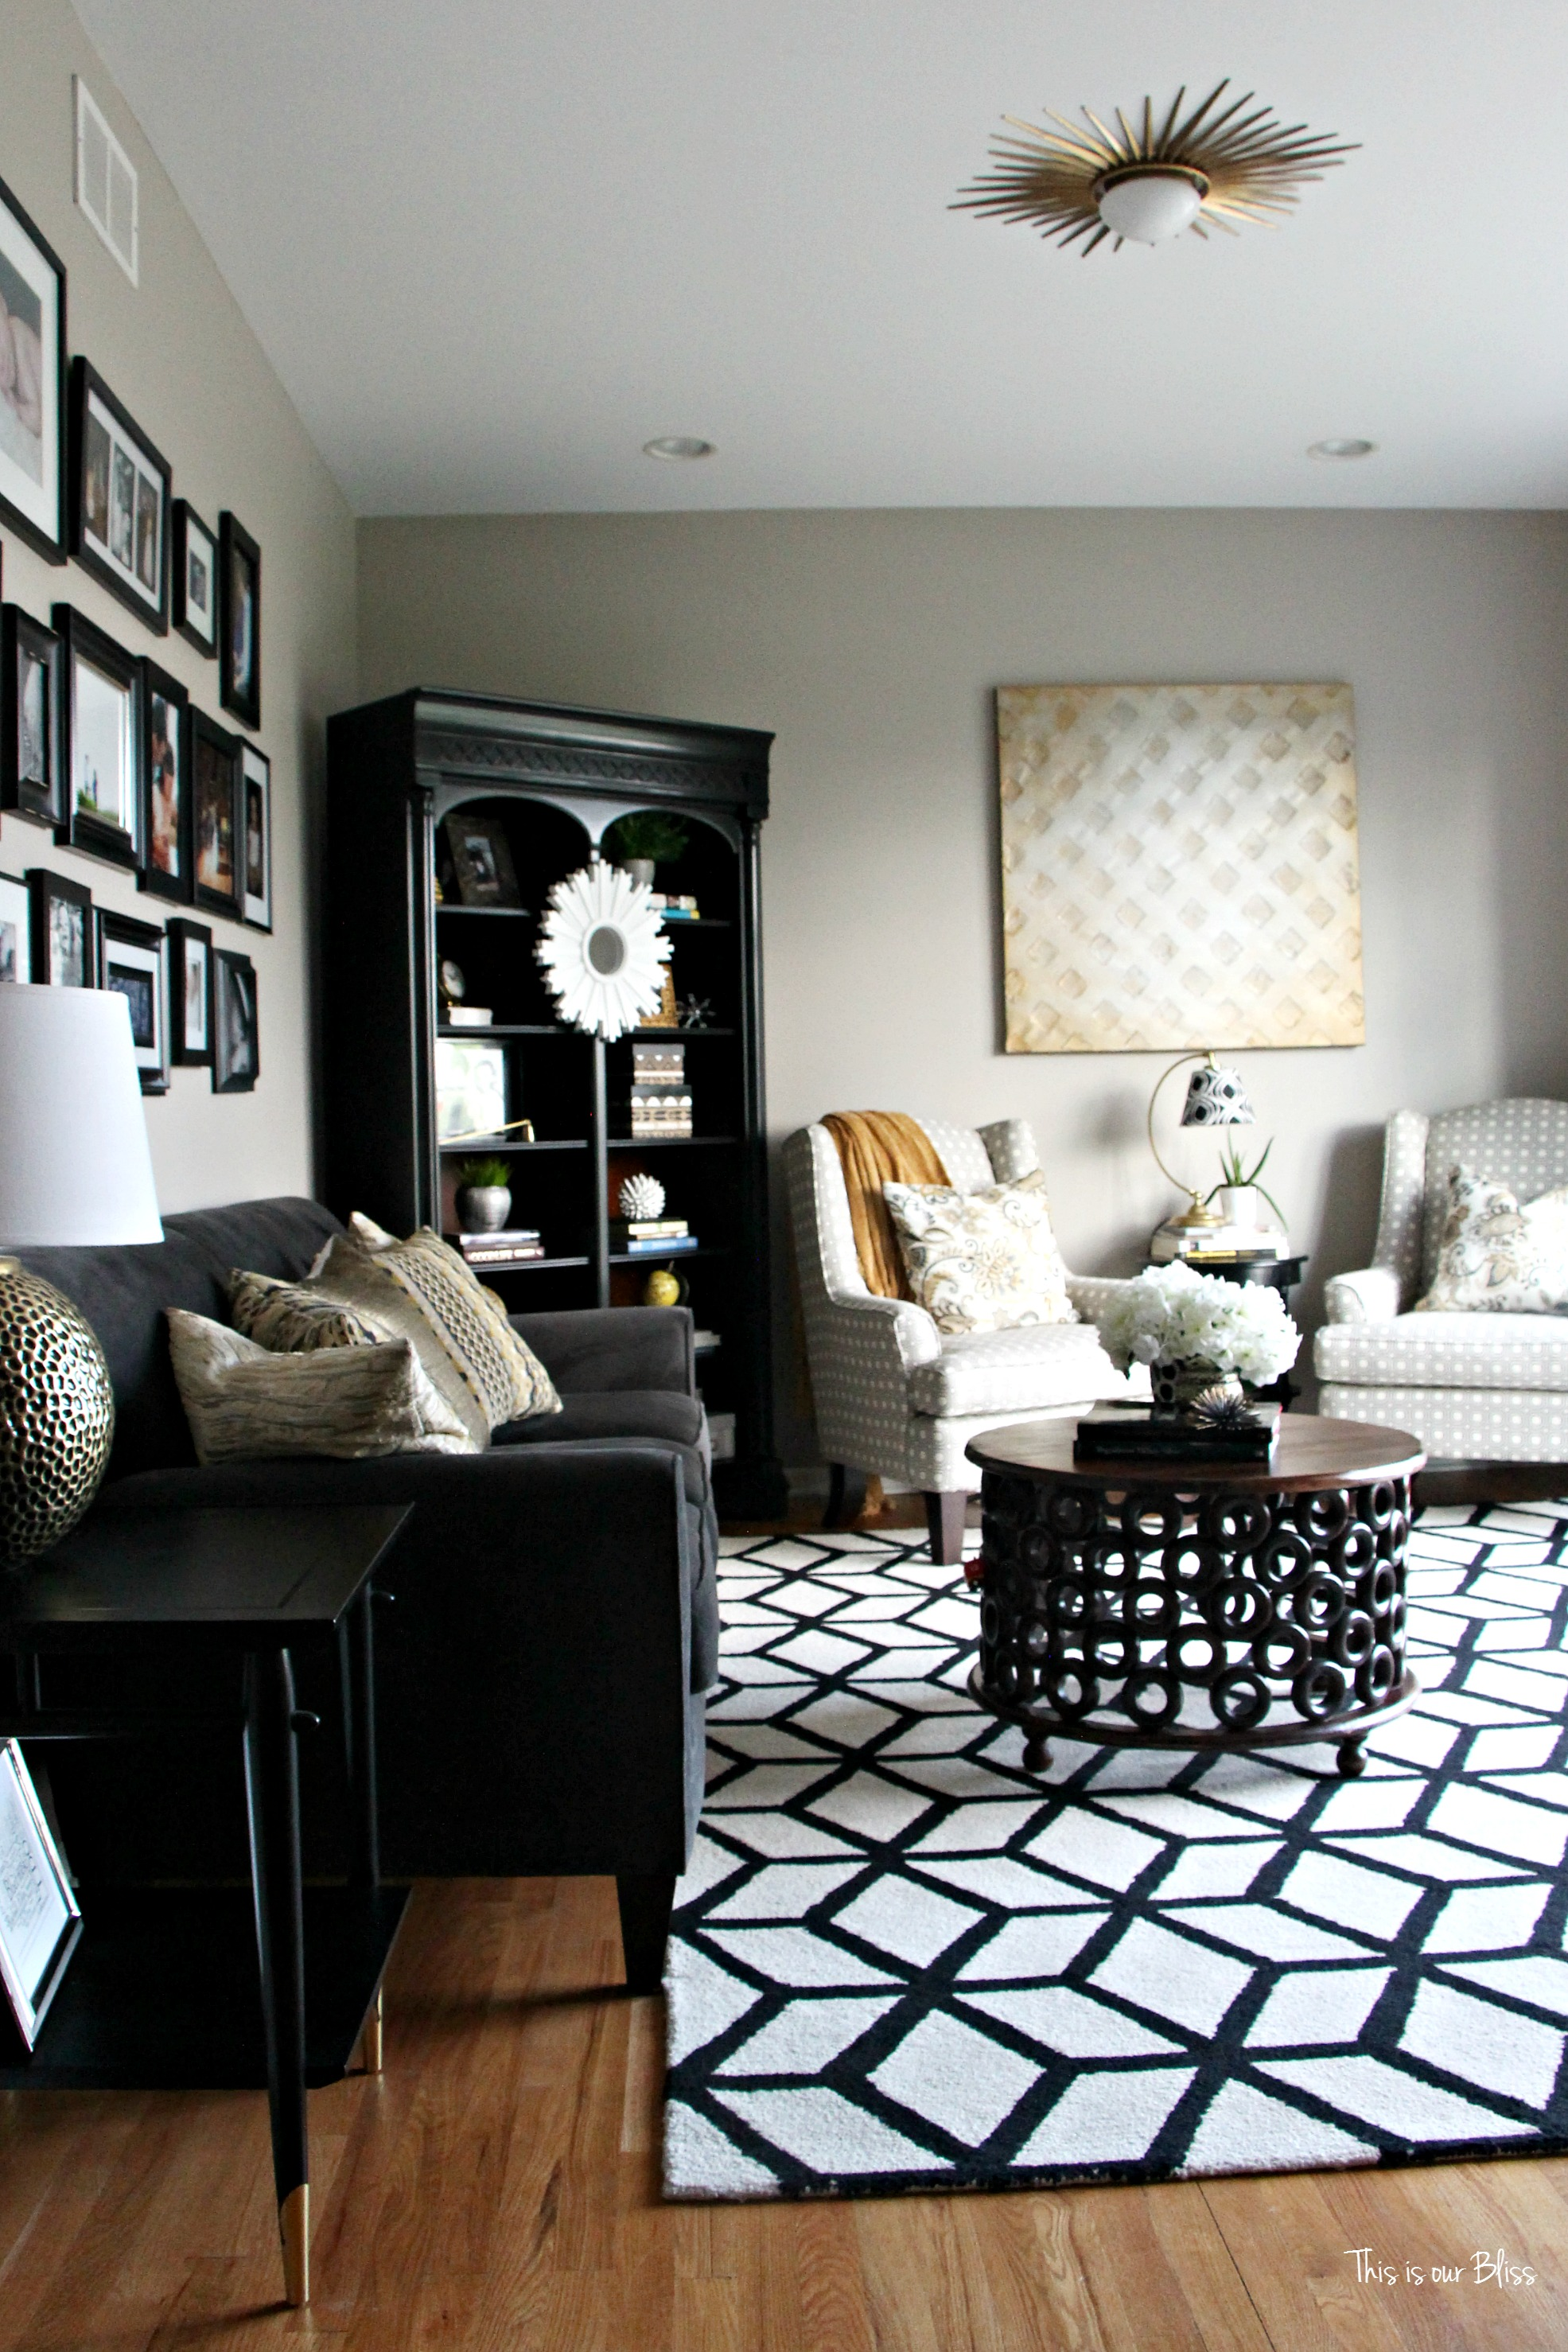 12 Bold Black White Geometric Rugs on Antique Nursery Furniture